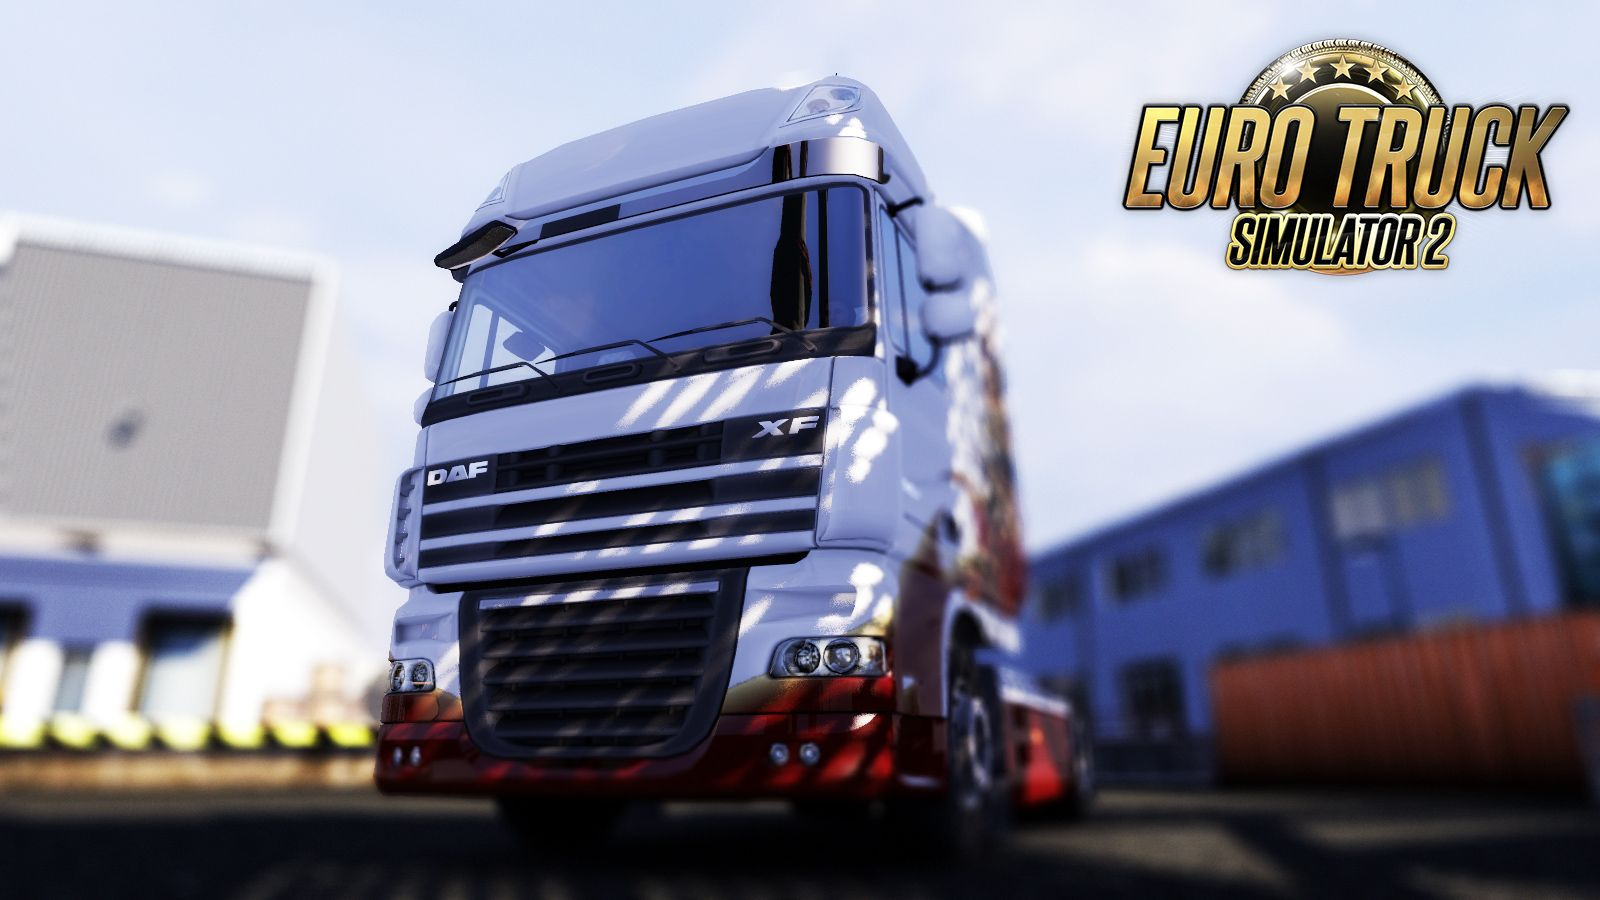 Free download pc game euro truck simulator 2 going east euro truck simulator 2 going